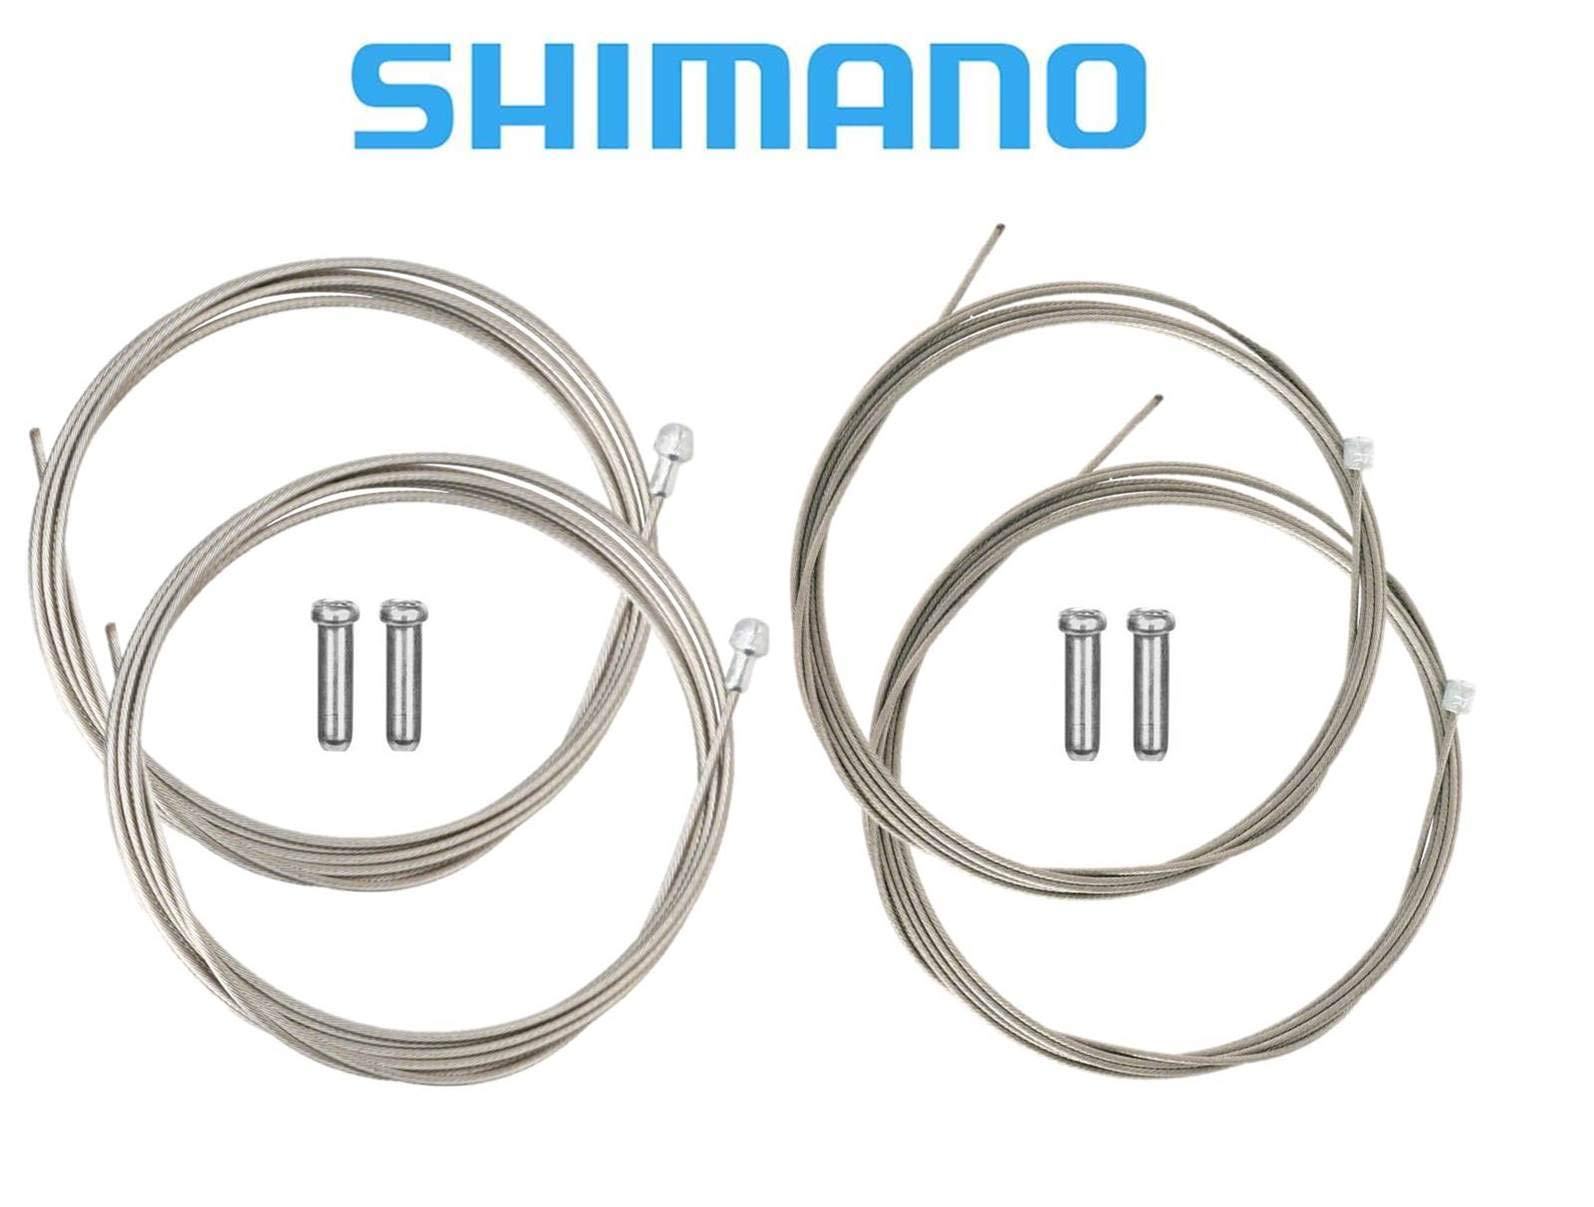 SHIMANO Road Brake and Shifter Cable Set Bundle, Housing Sold Separately by SHIMANO